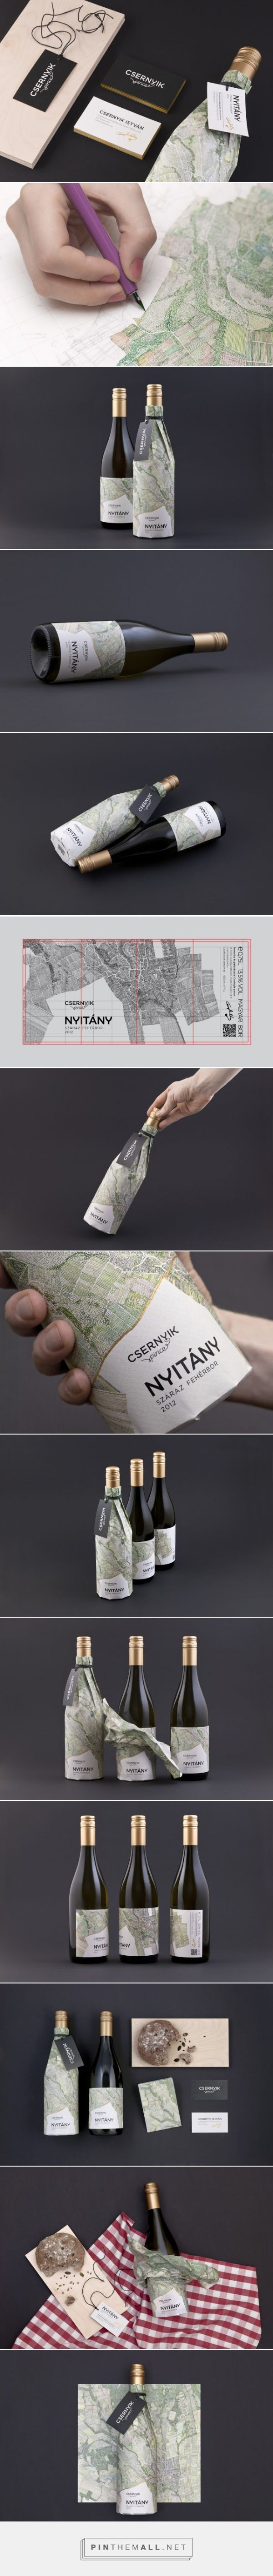 Nyitány ‪#‎Wine‬ Label designed by Peltan-Brosz Roland and Rohmann Nóra - http://www.packagingoftheworld.com/2015/04/csernyik-pince-nyitany-wine-label.html